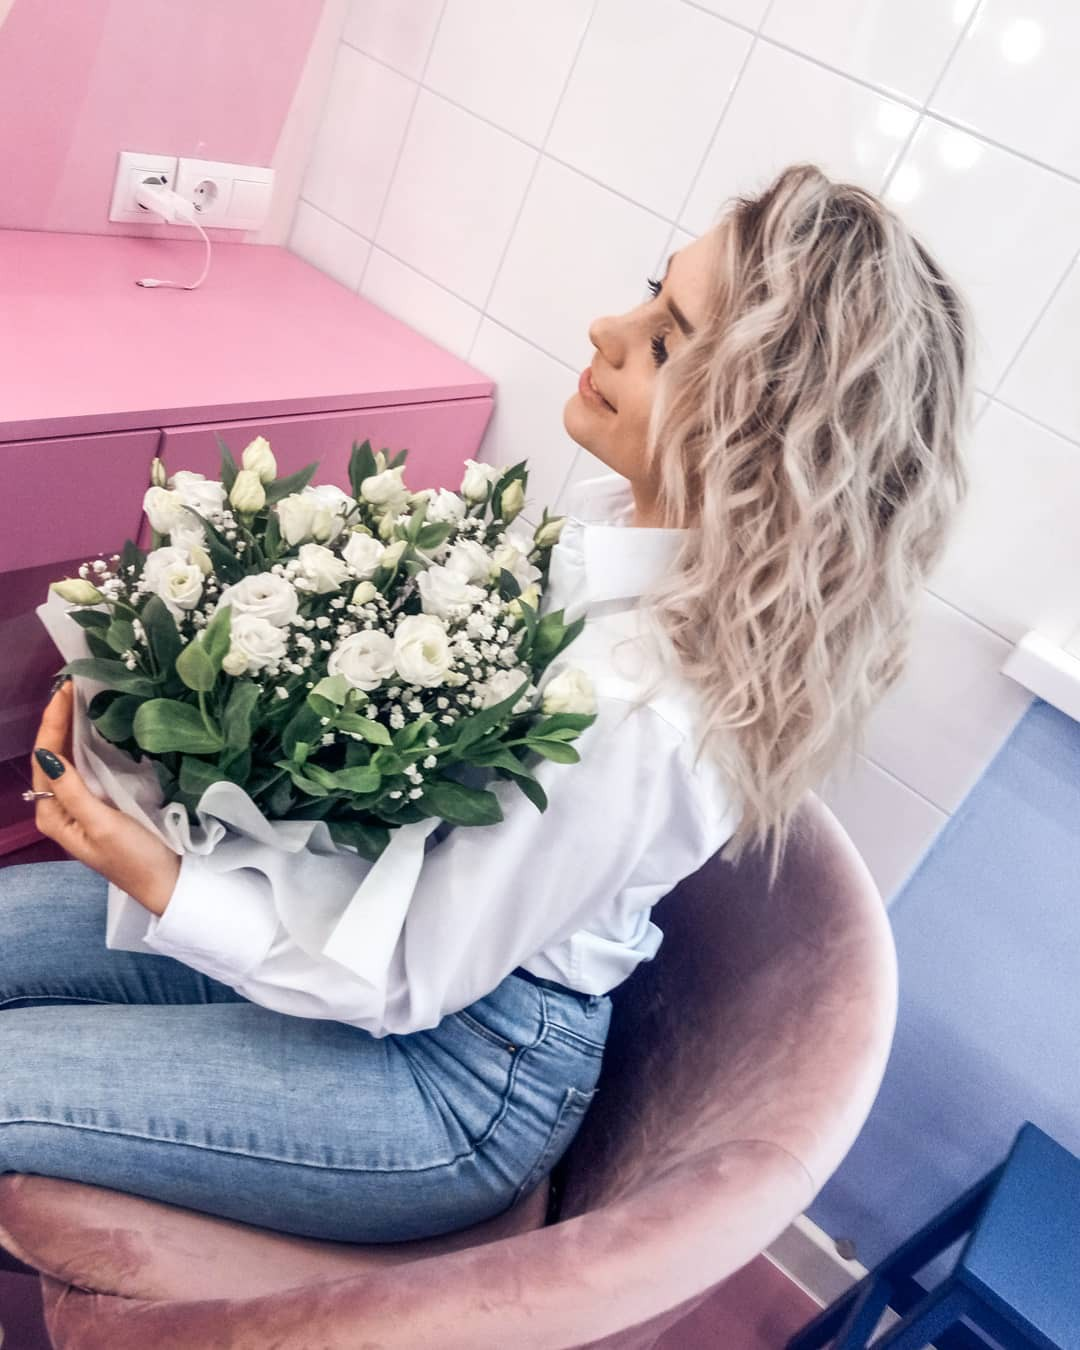 Aleksandra Glance floral design colour outfit, in blond hairs, Girls Hairstyle